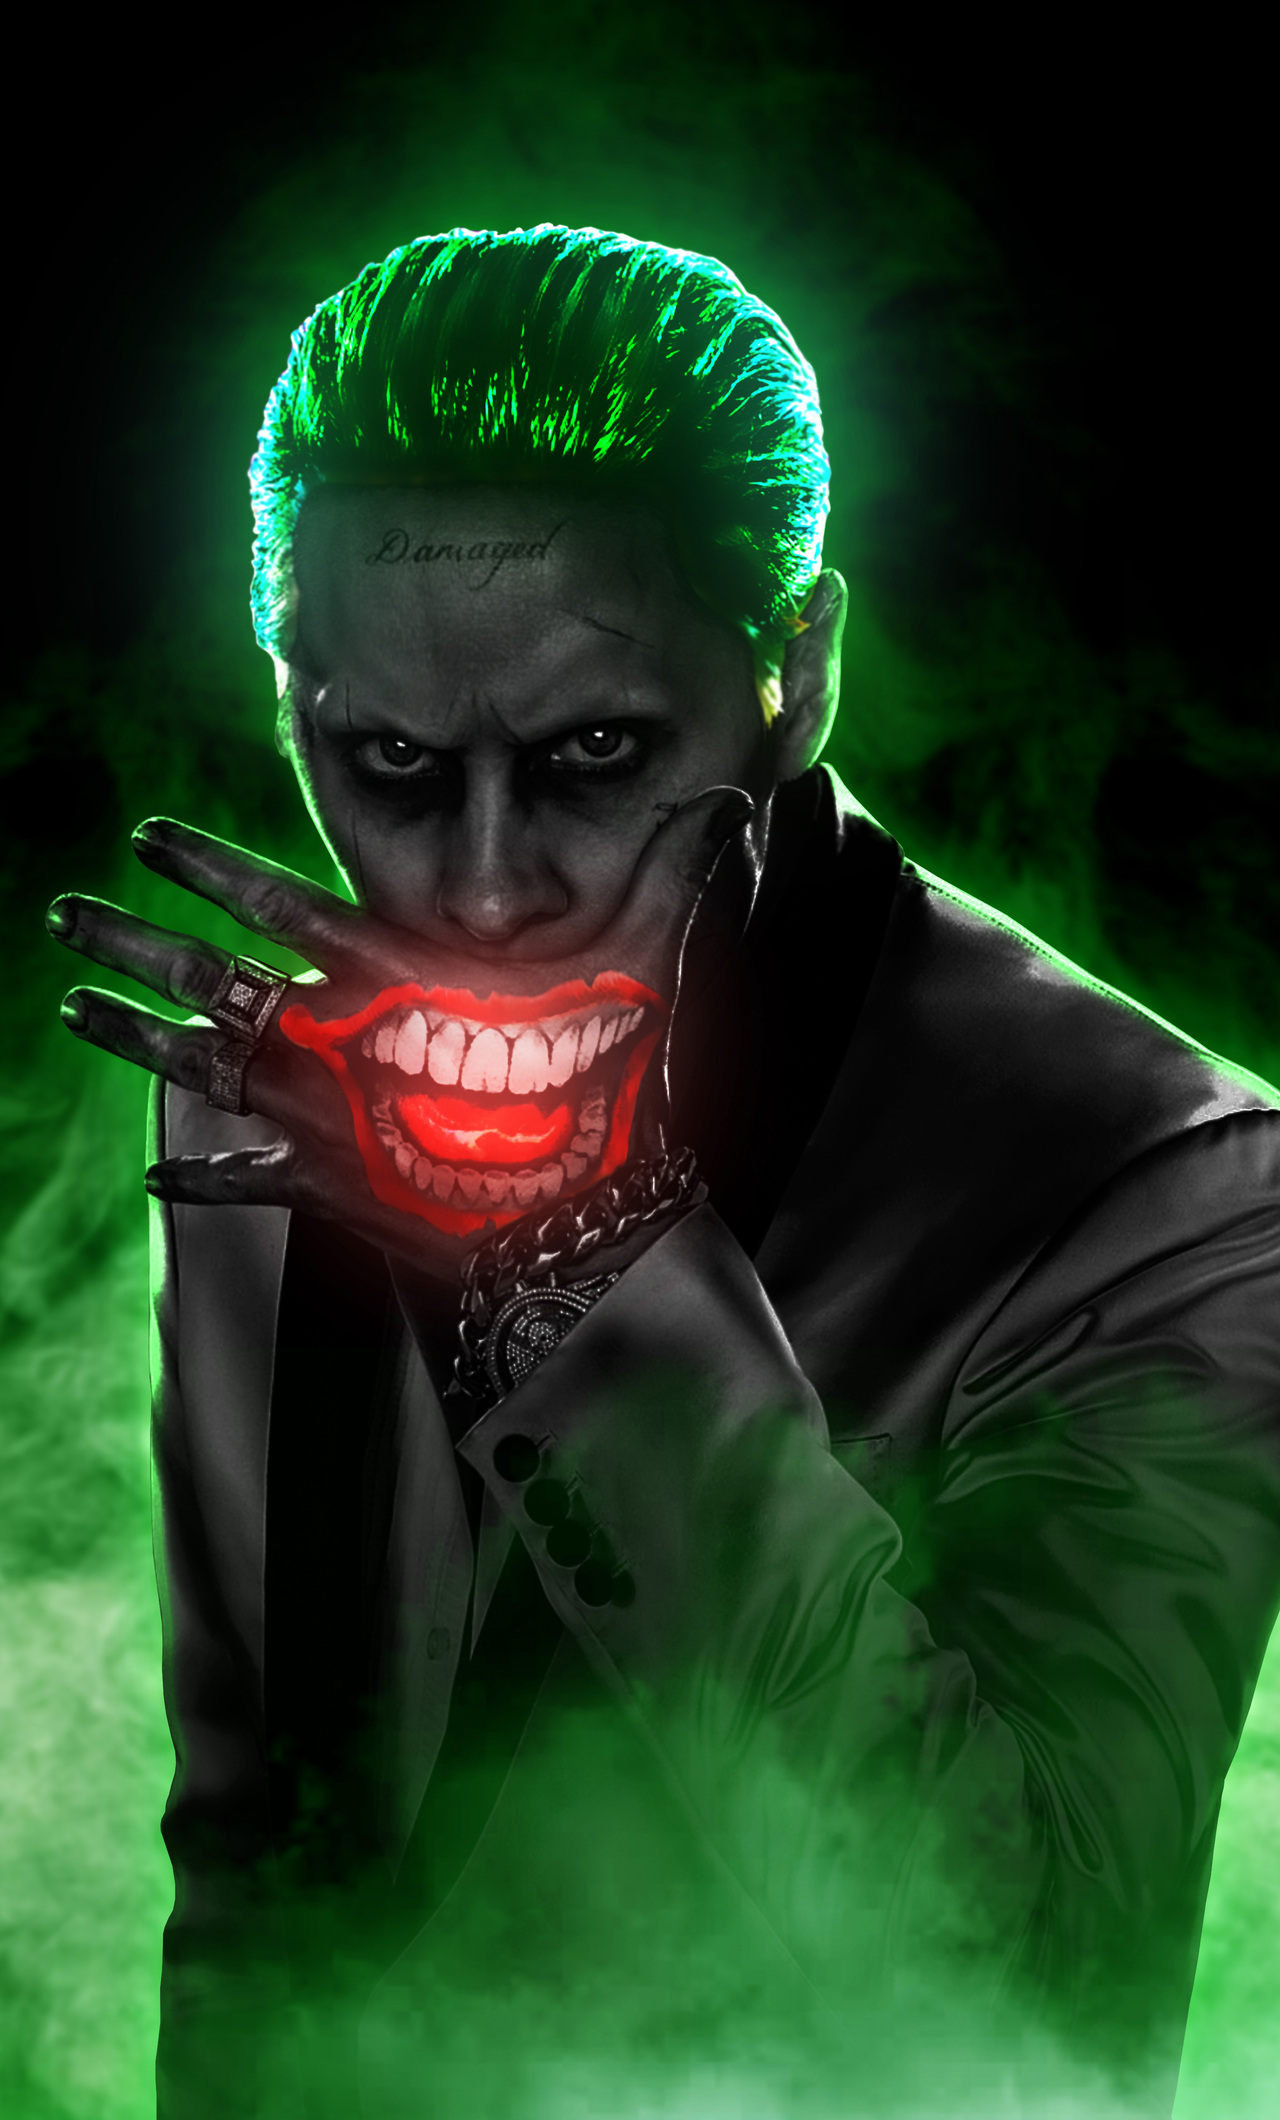 1280x2120 Jared Leto Joker 4k iPhone 6+ HD 4k Wallpapers, Images, Backgrounds, Photos and Pictures